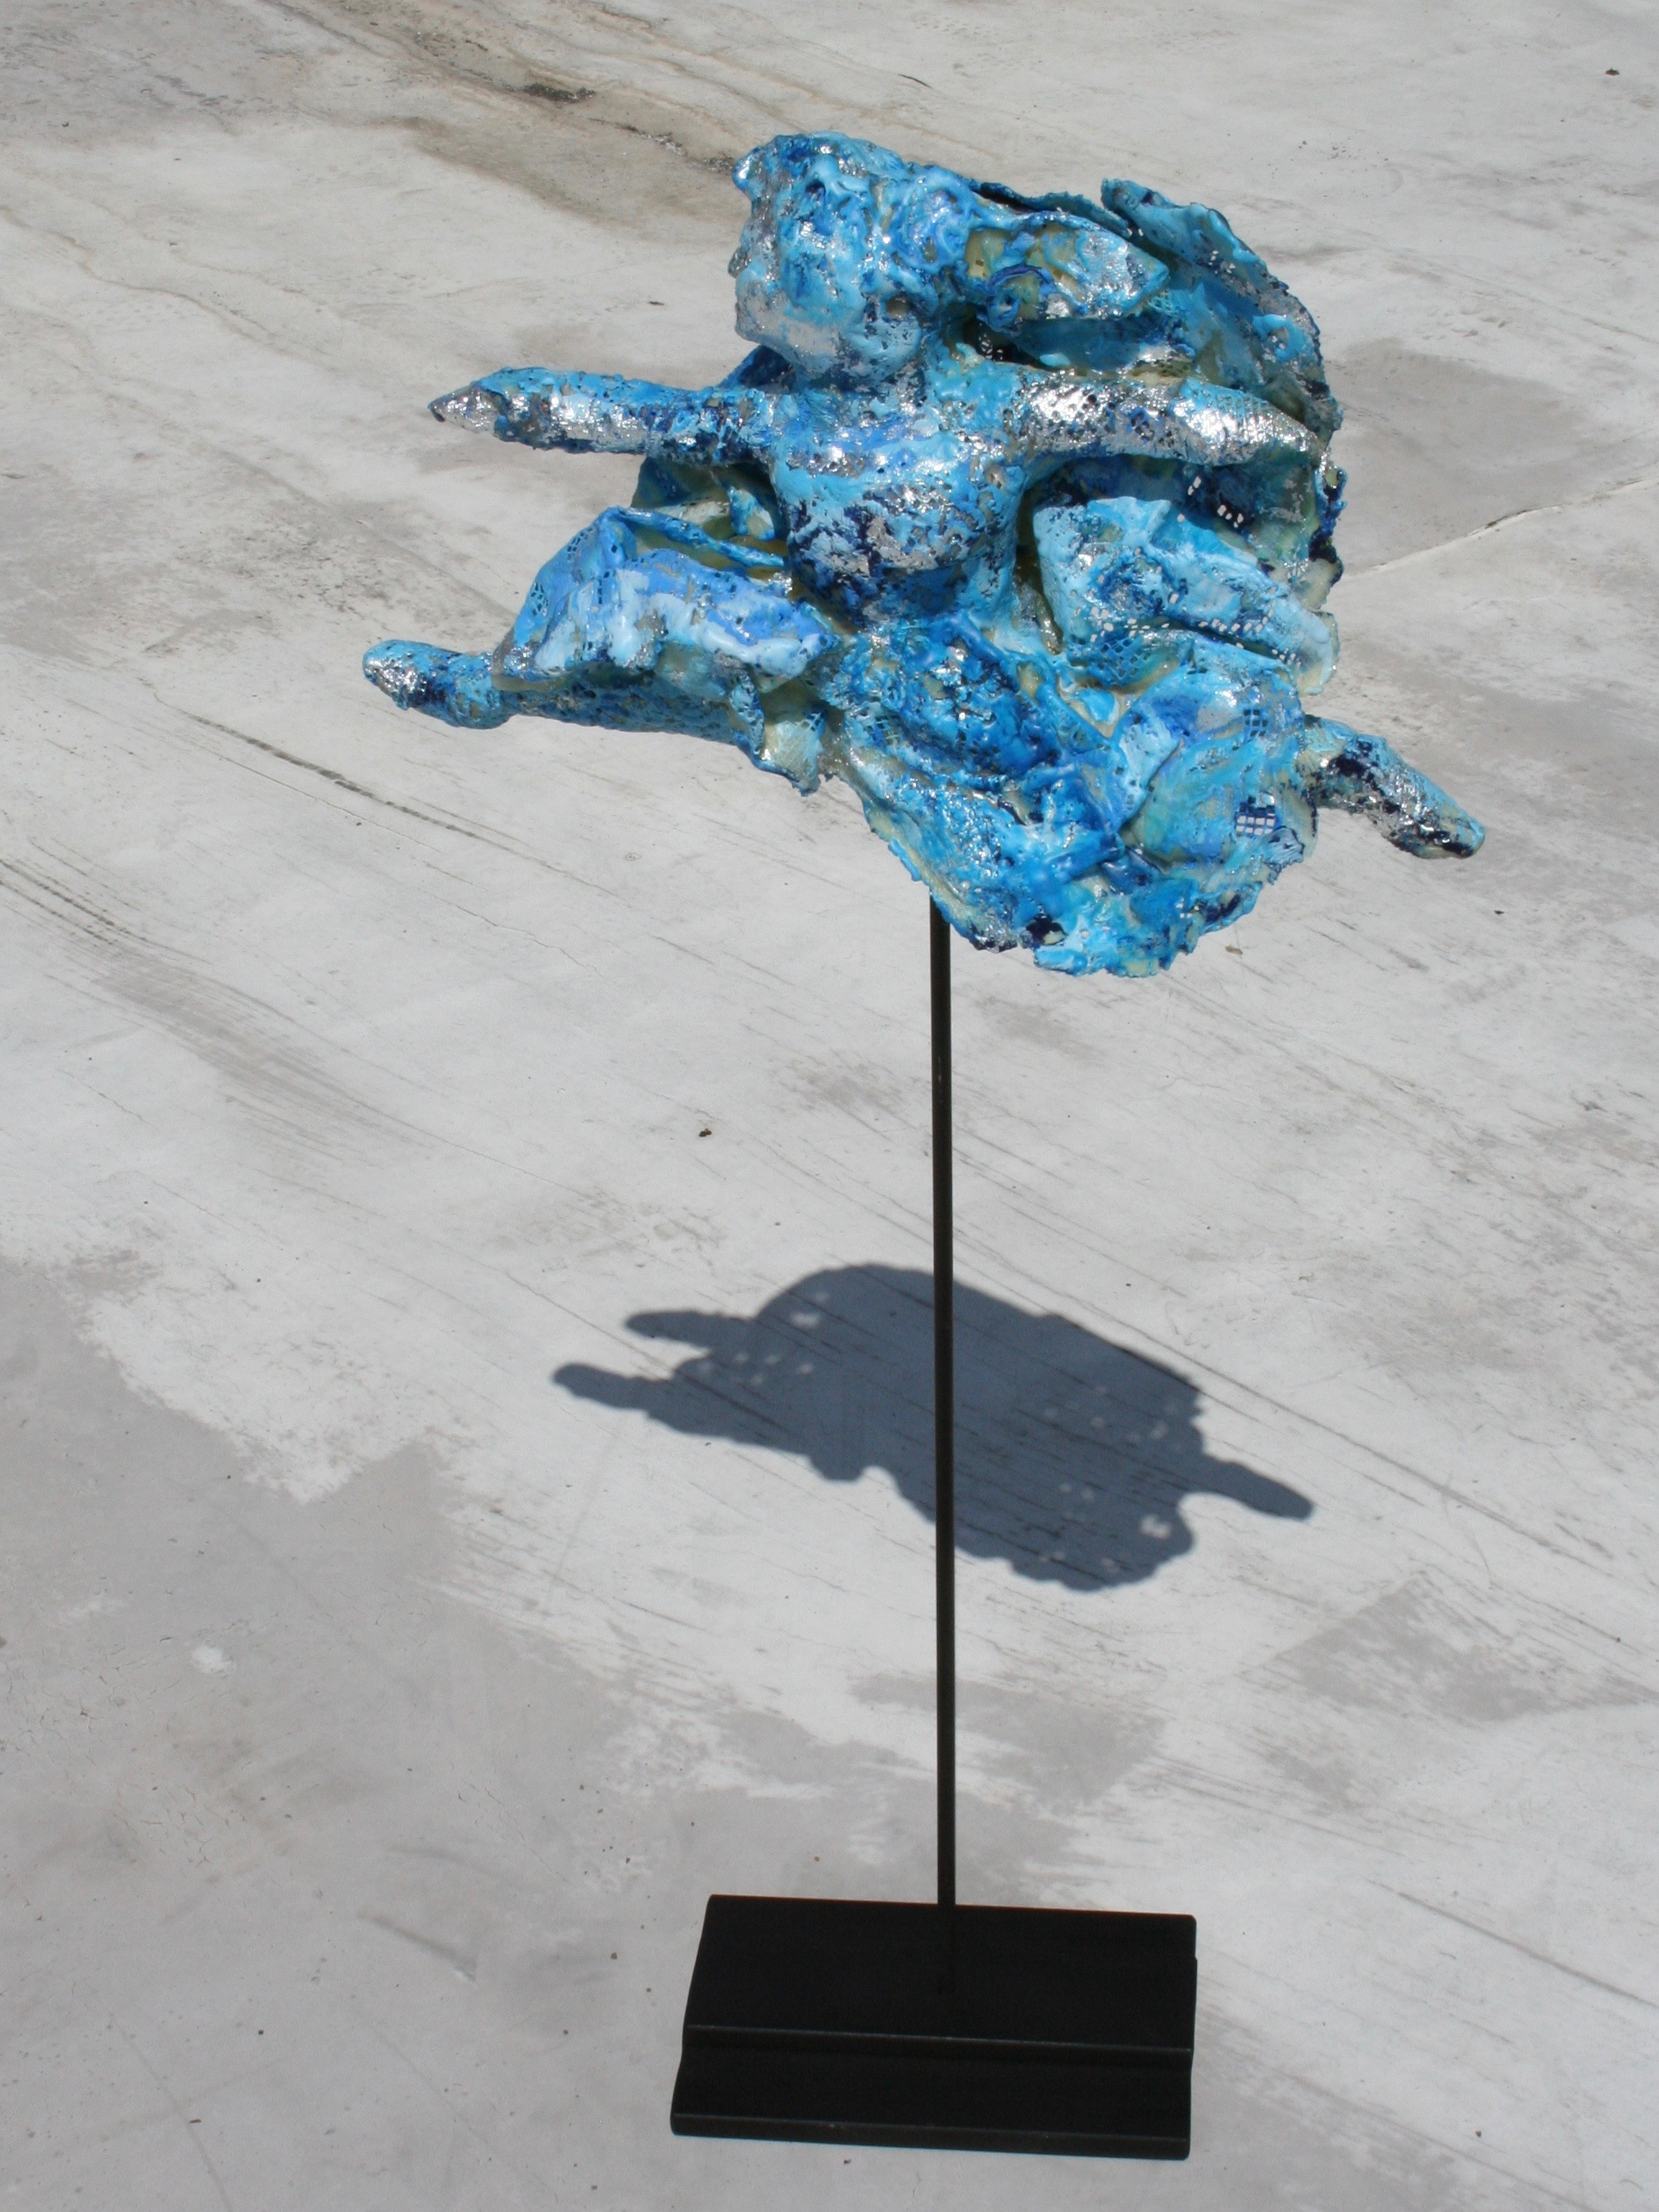 Sculpture for Sale in New York City Using Lace, Encaustic, and Iron by Rebecca Darlington